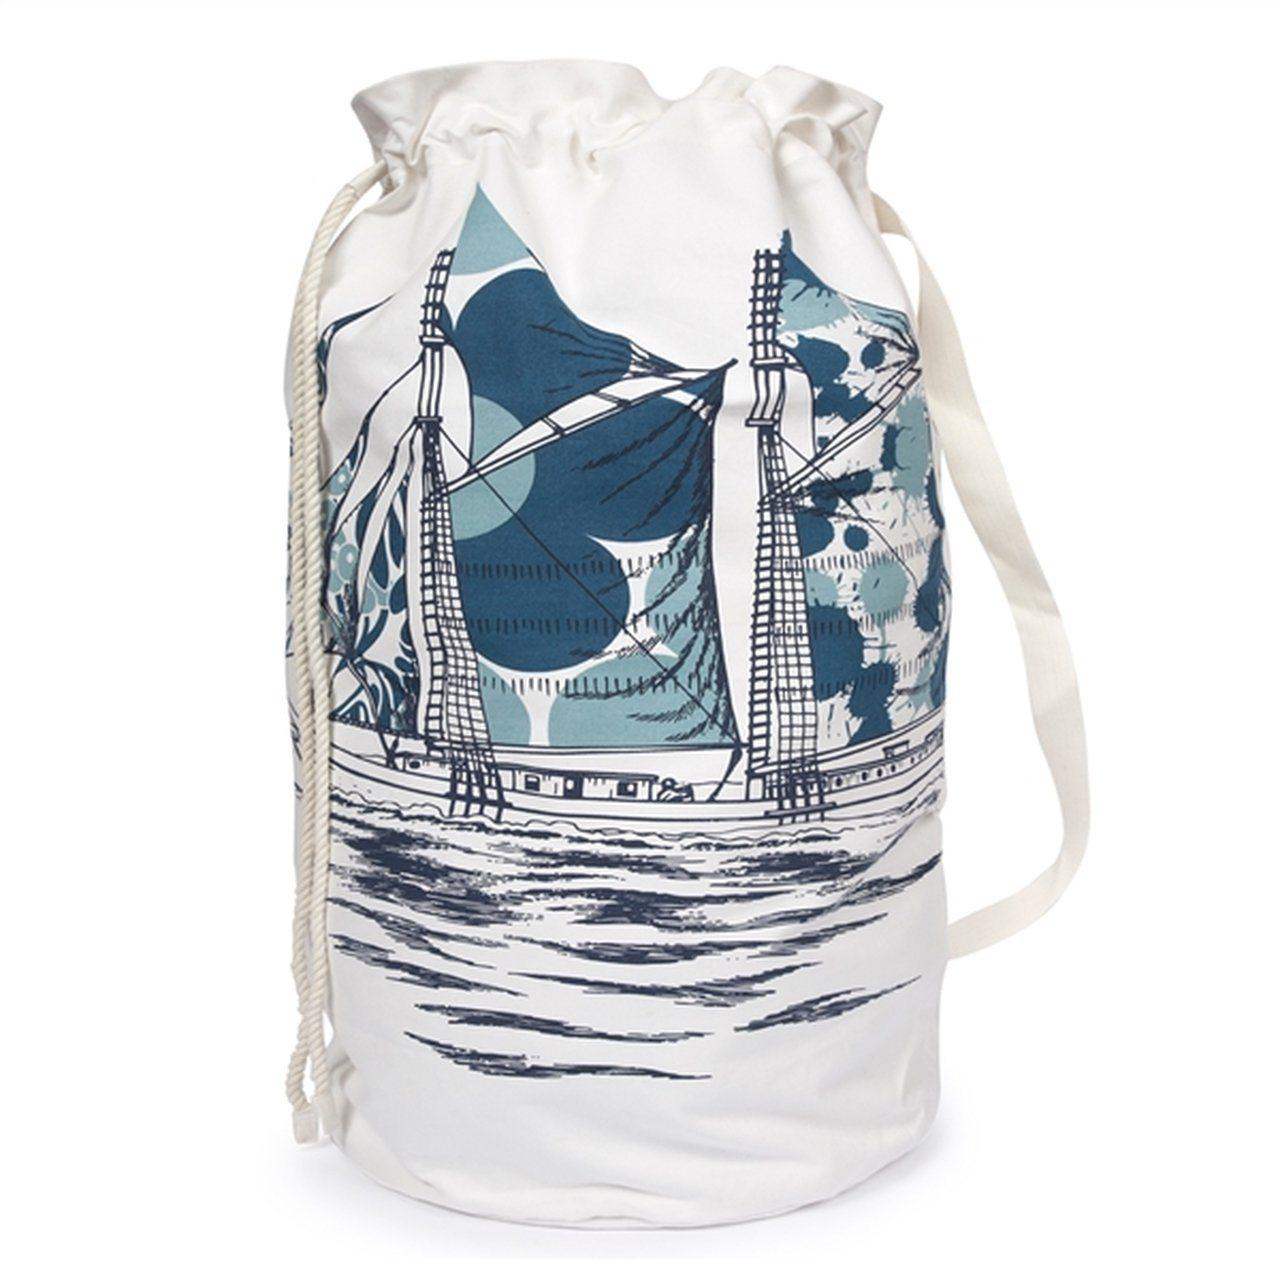 Thomas Paul Laundry Bag ANCHOR SKETCH DUFFLE LAUNDRY BAG